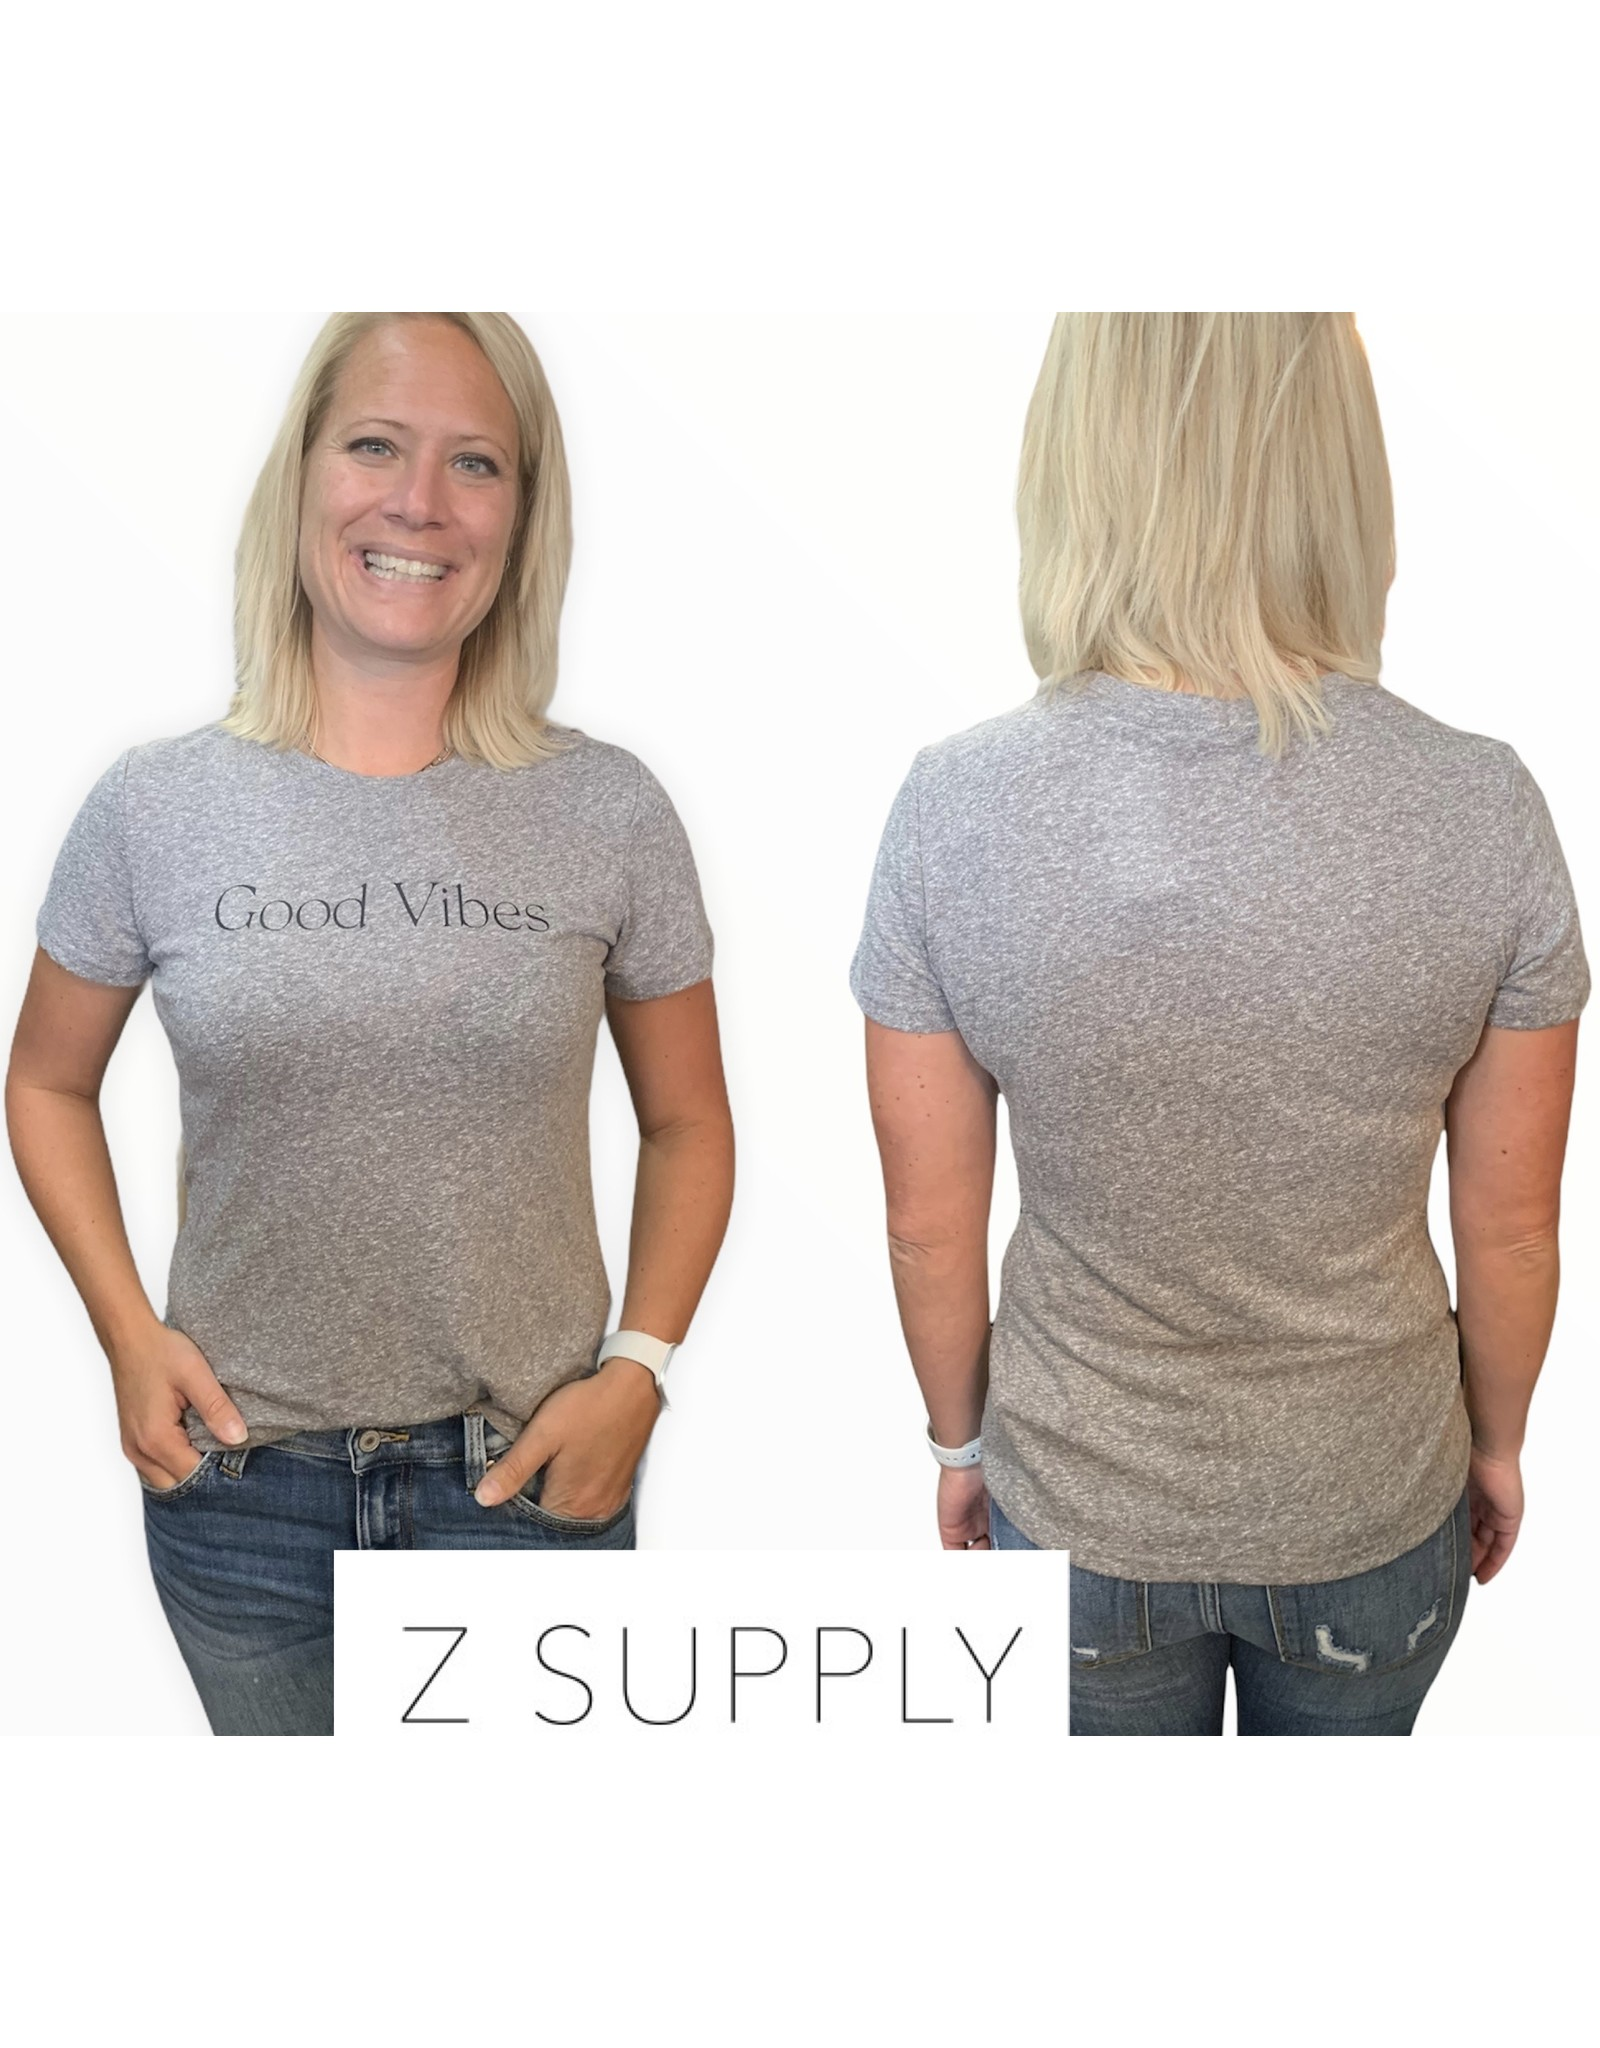 Z Supply Z SUPPLY Good Vibes Easy Tee